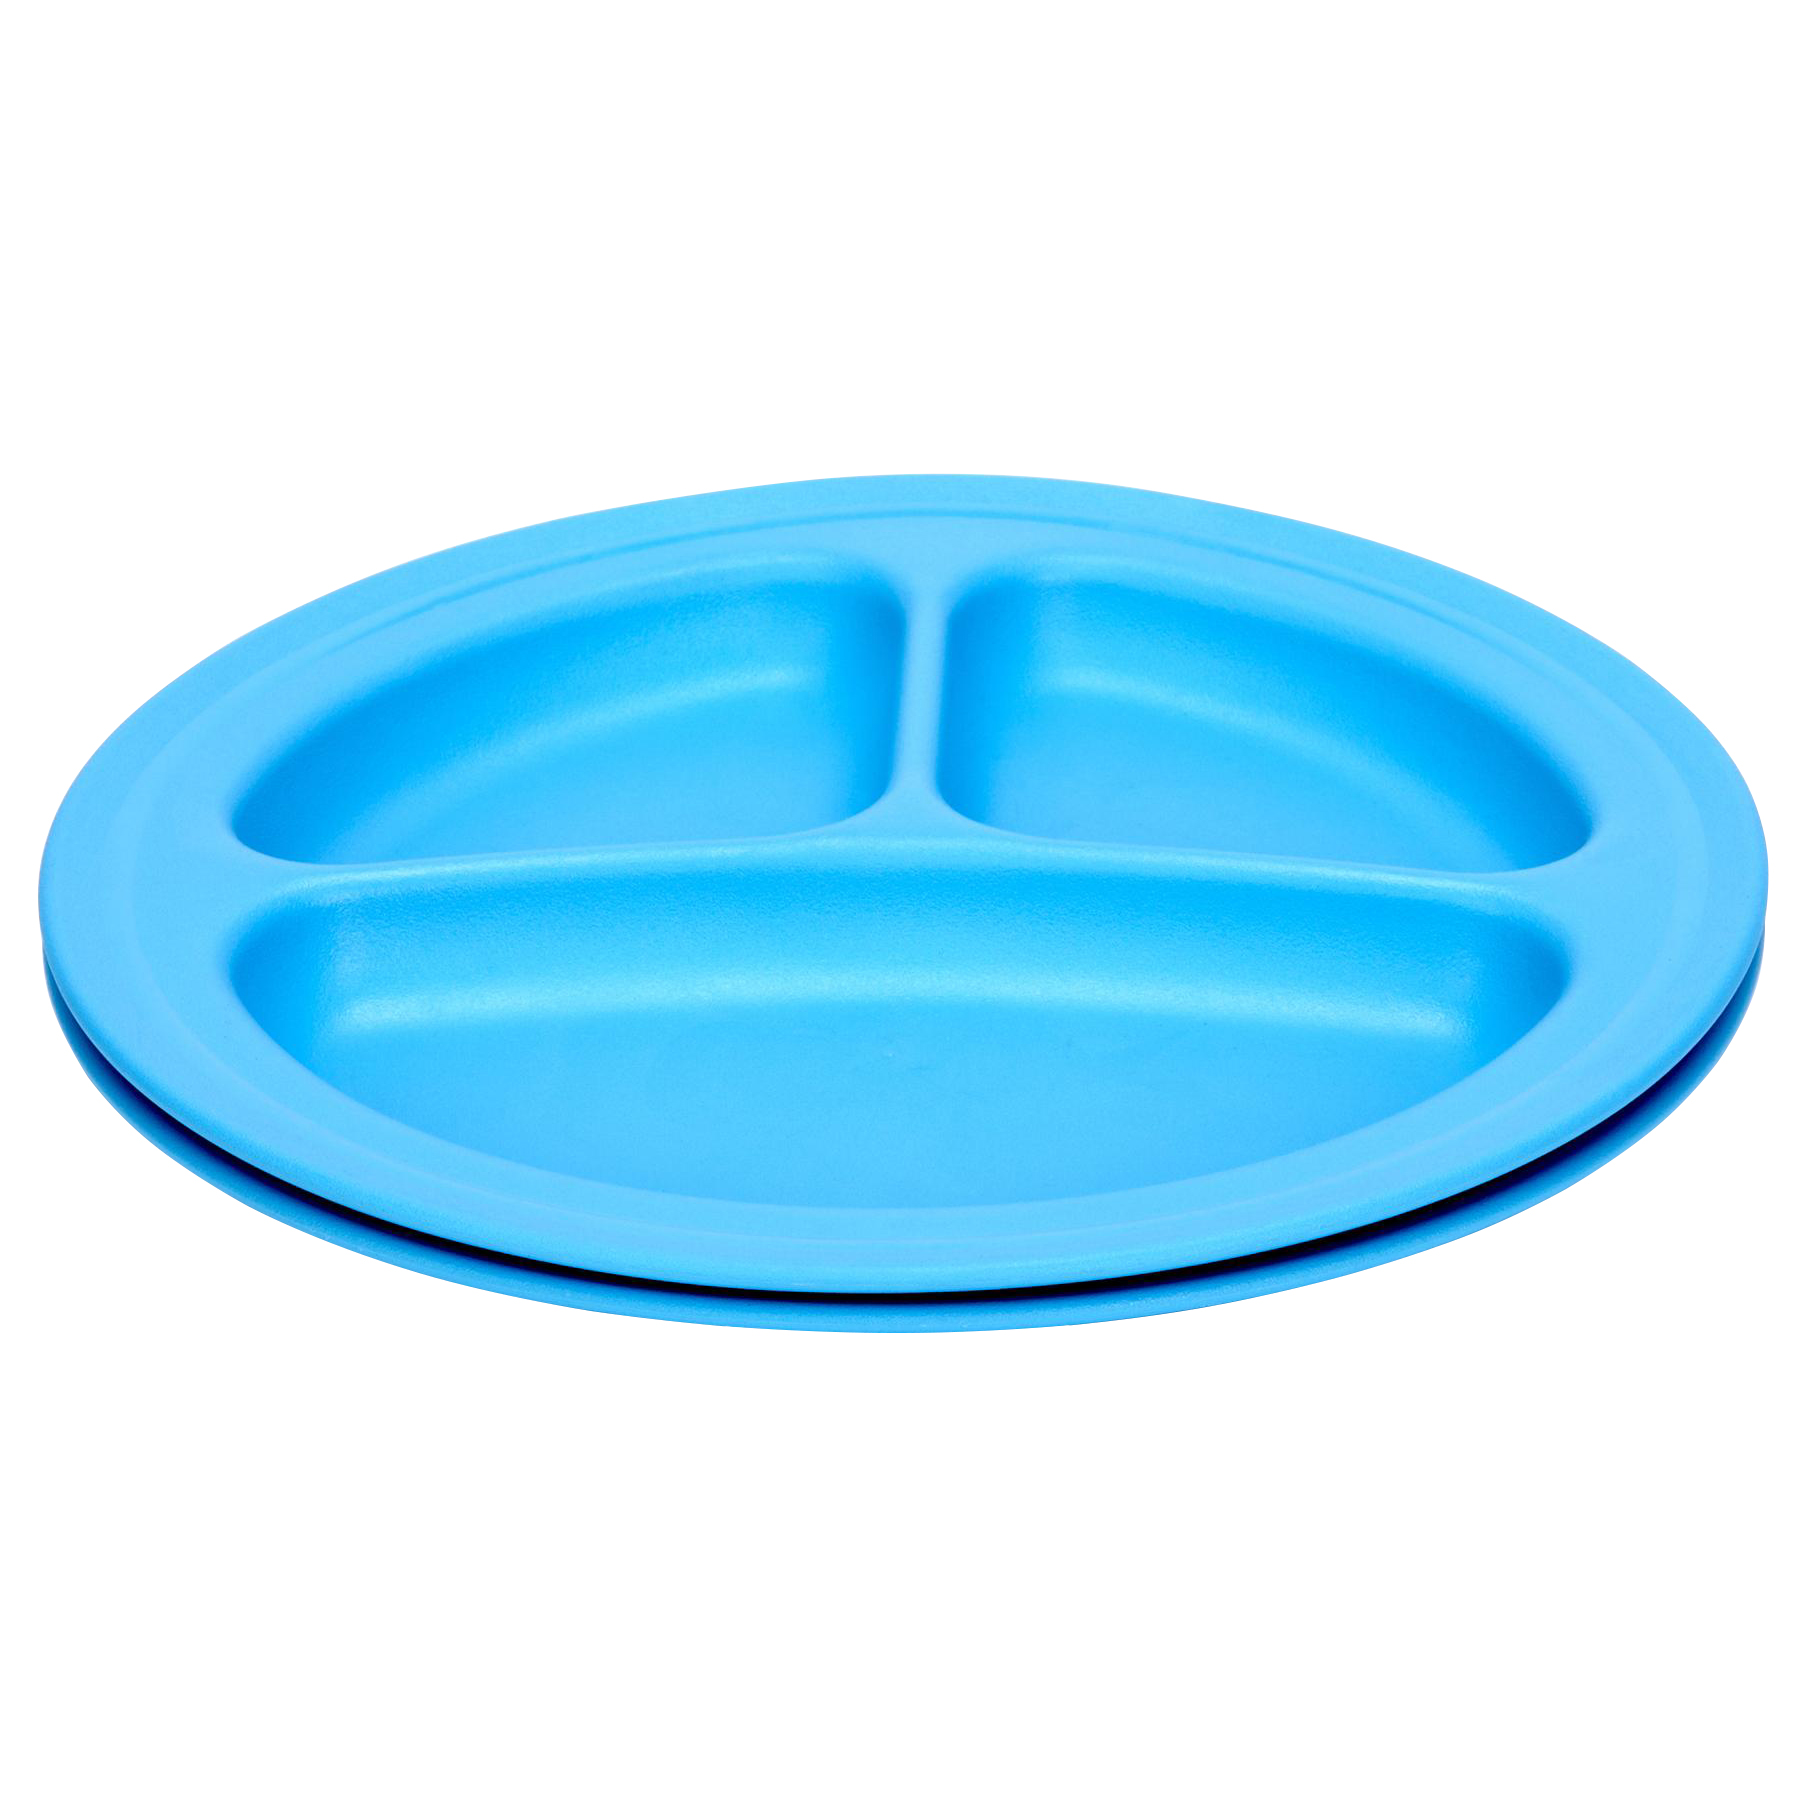 Green Eats Divided Plates - 2 Pack - Blue